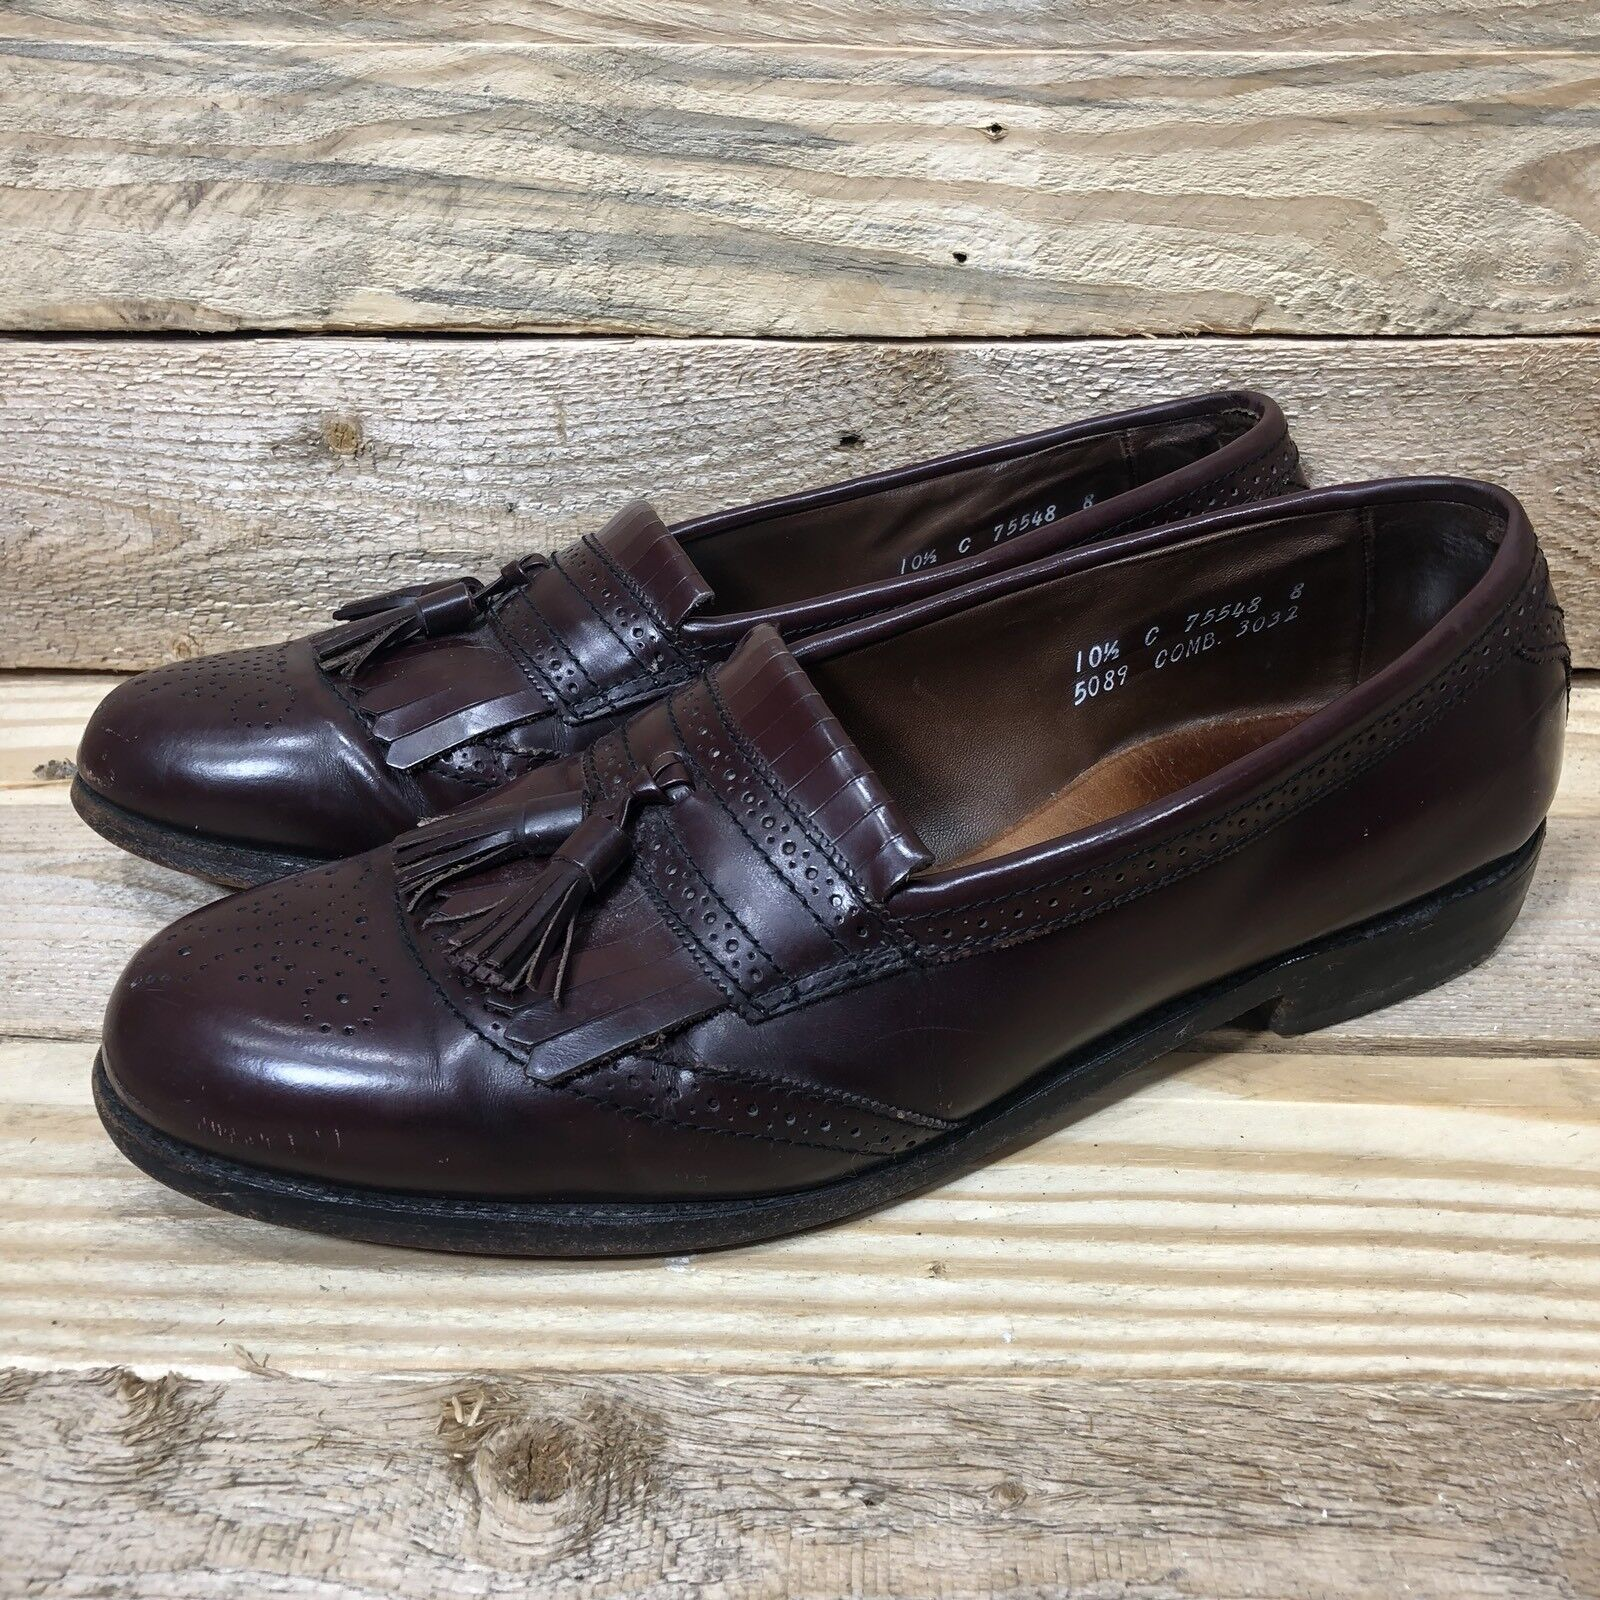 ALLEN EDMONDS Leather Bridgeton Wingtip Burgundy Tassel Leather EDMONDS Loafer Dress Shoes 10.5 3c2ab6